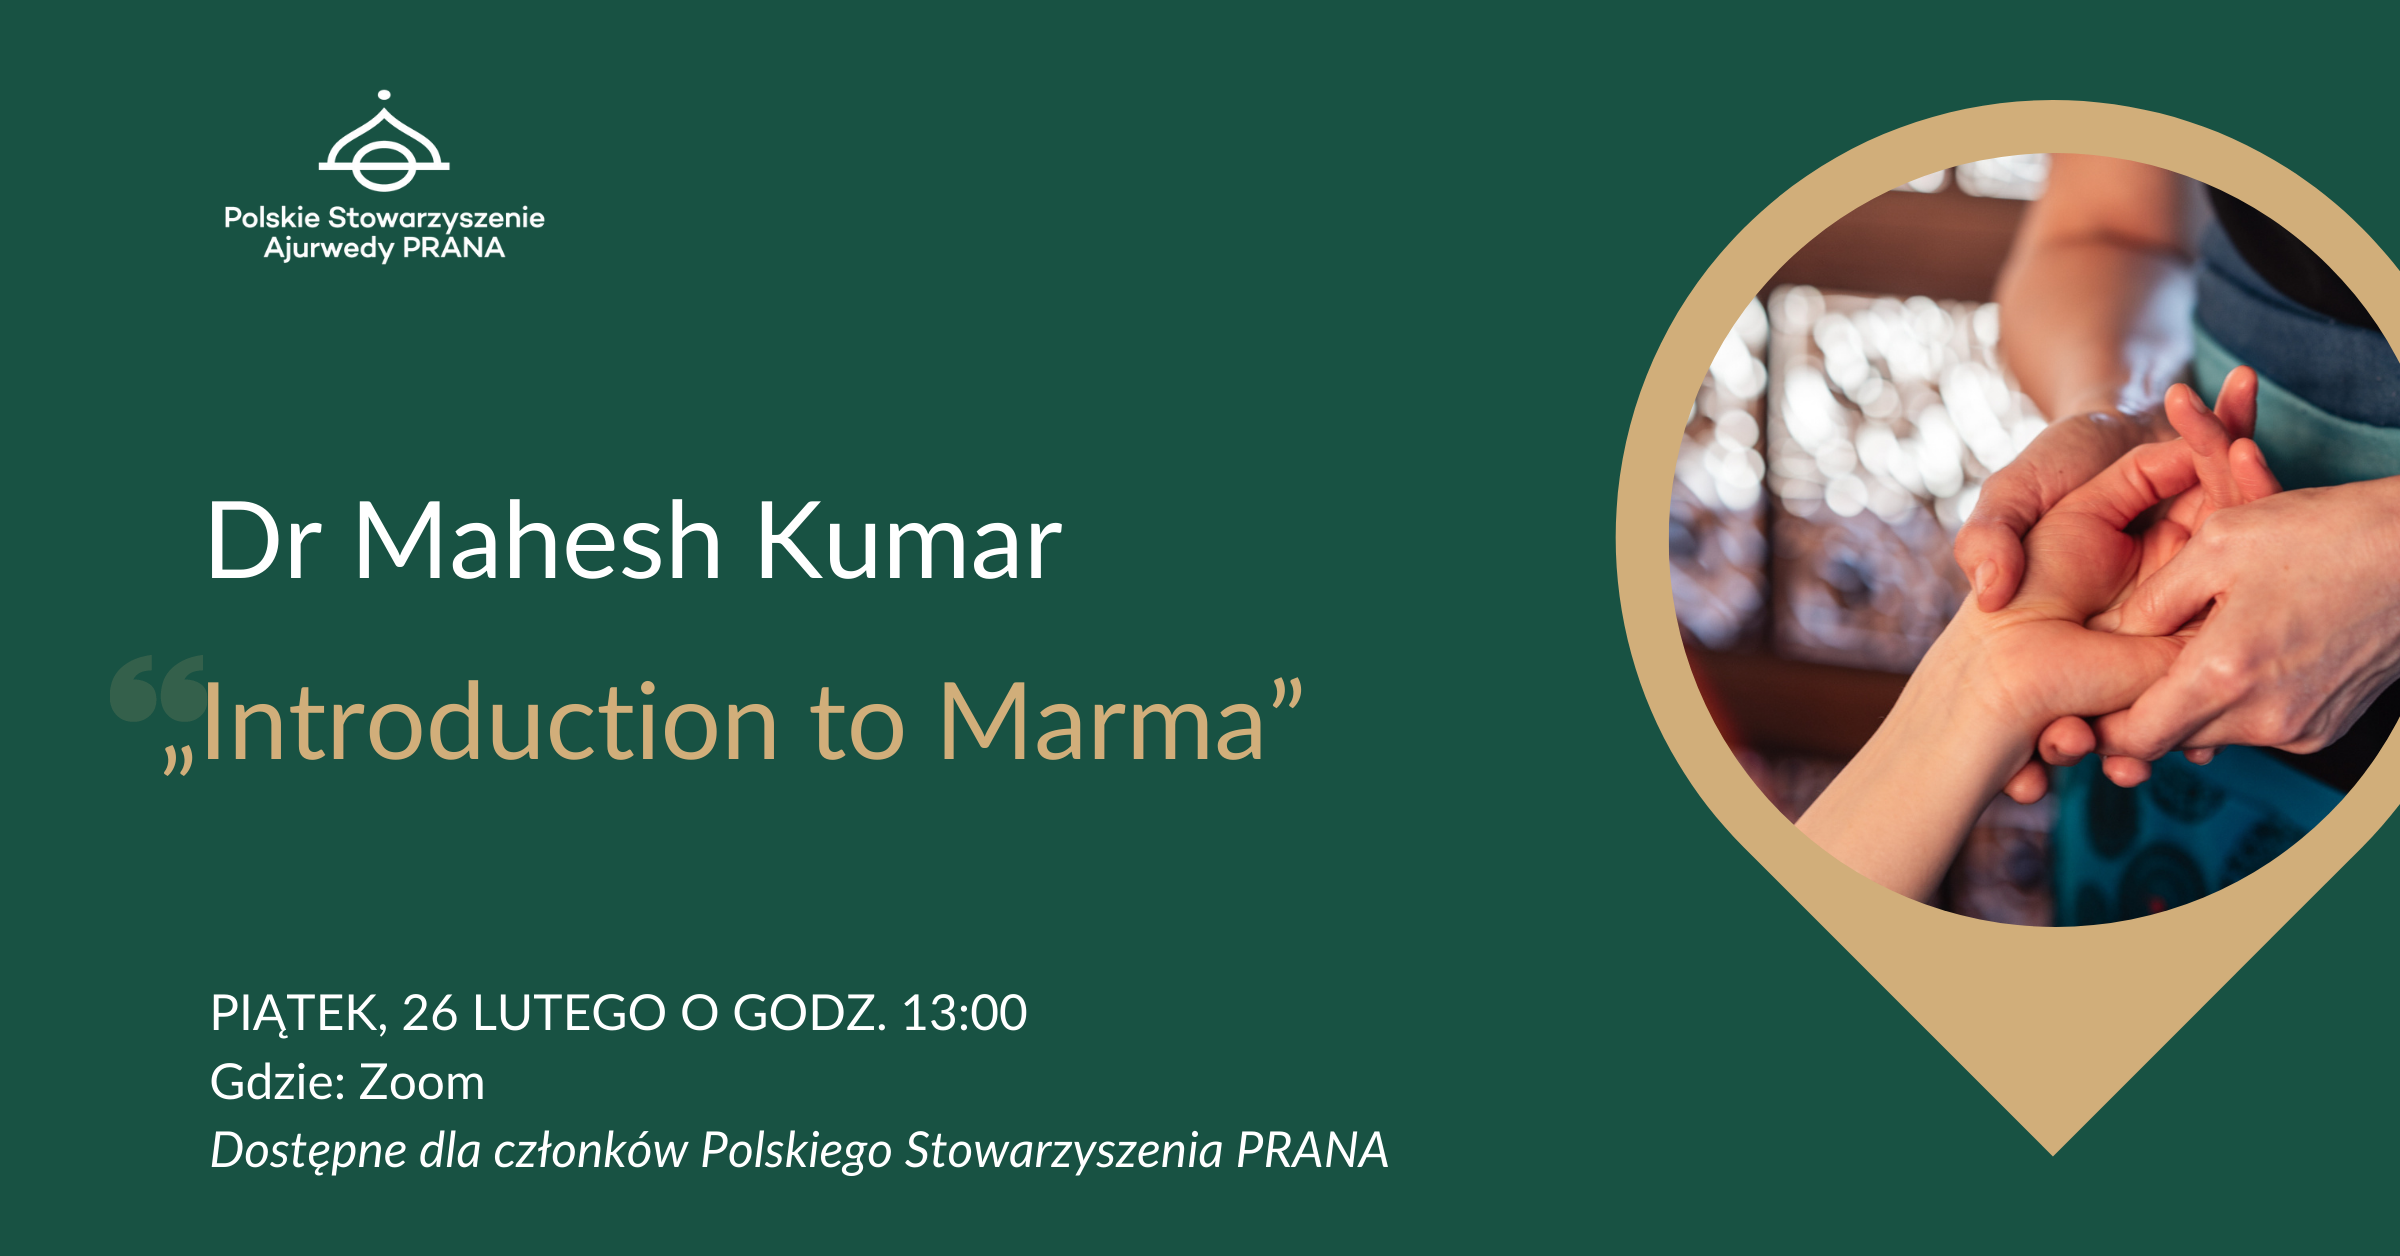 Spotkanie z doktor Mahesh Kumar - Introduction to Marma